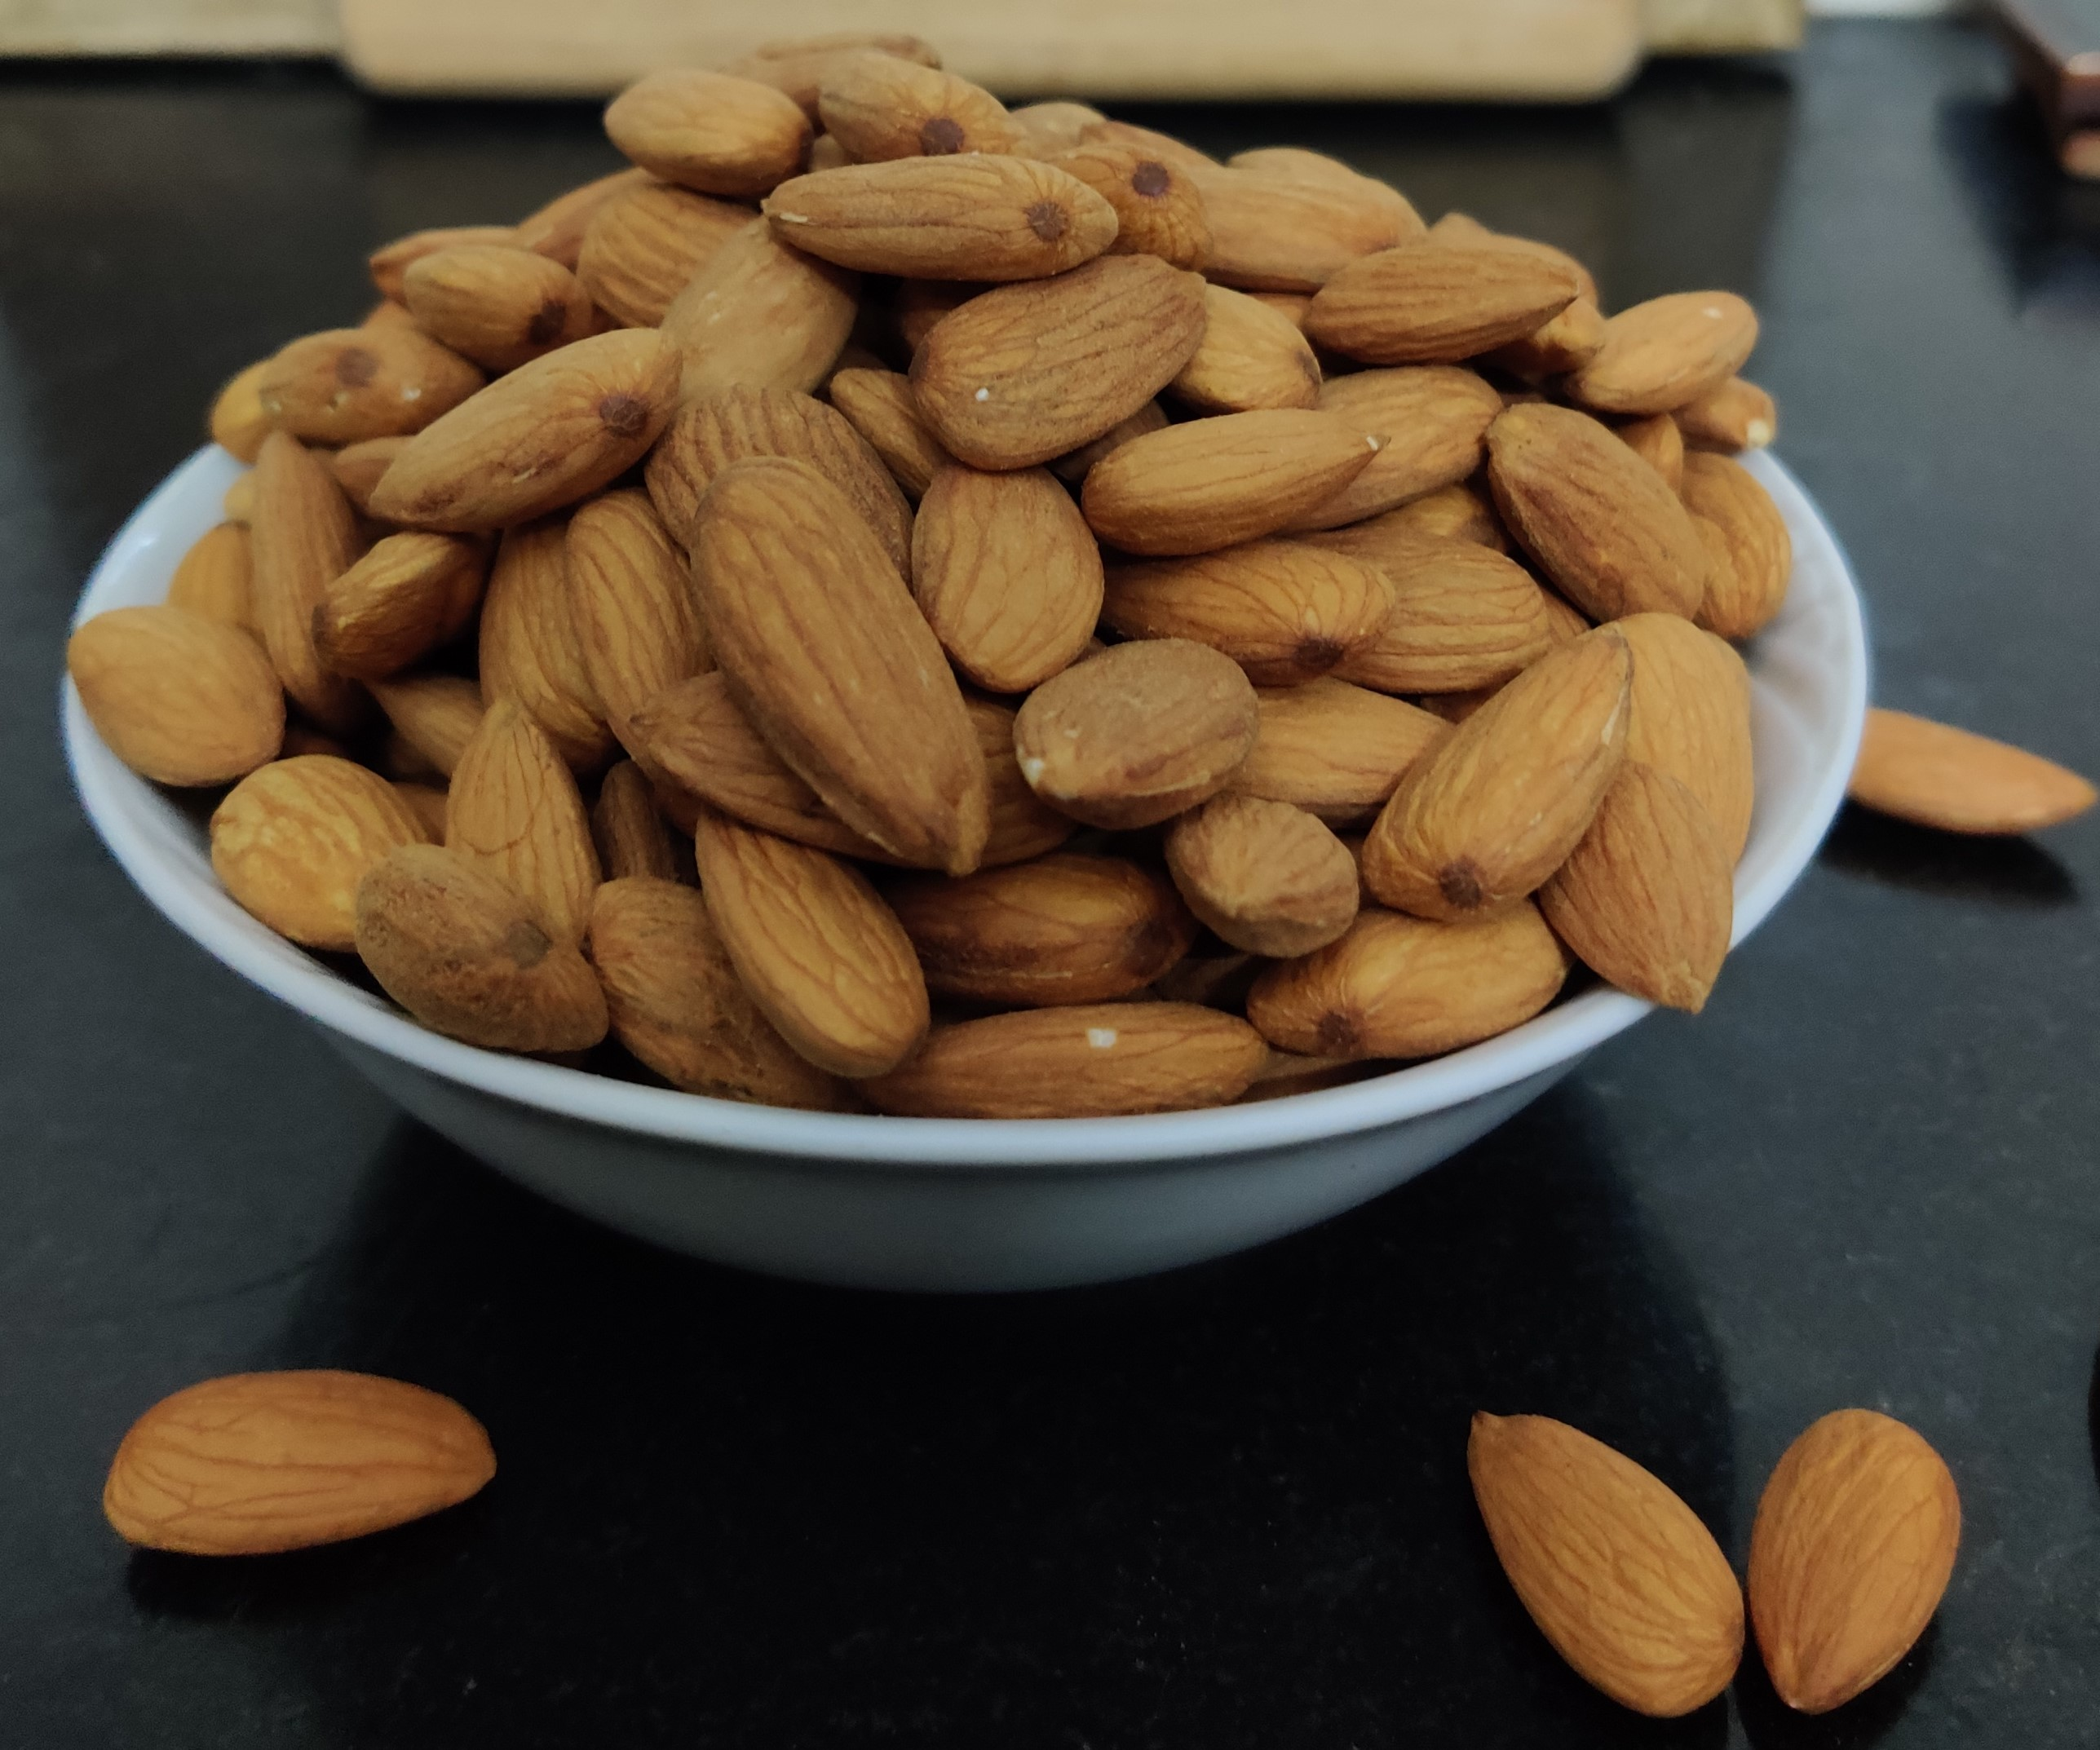 The starting point: 300 g of almonds